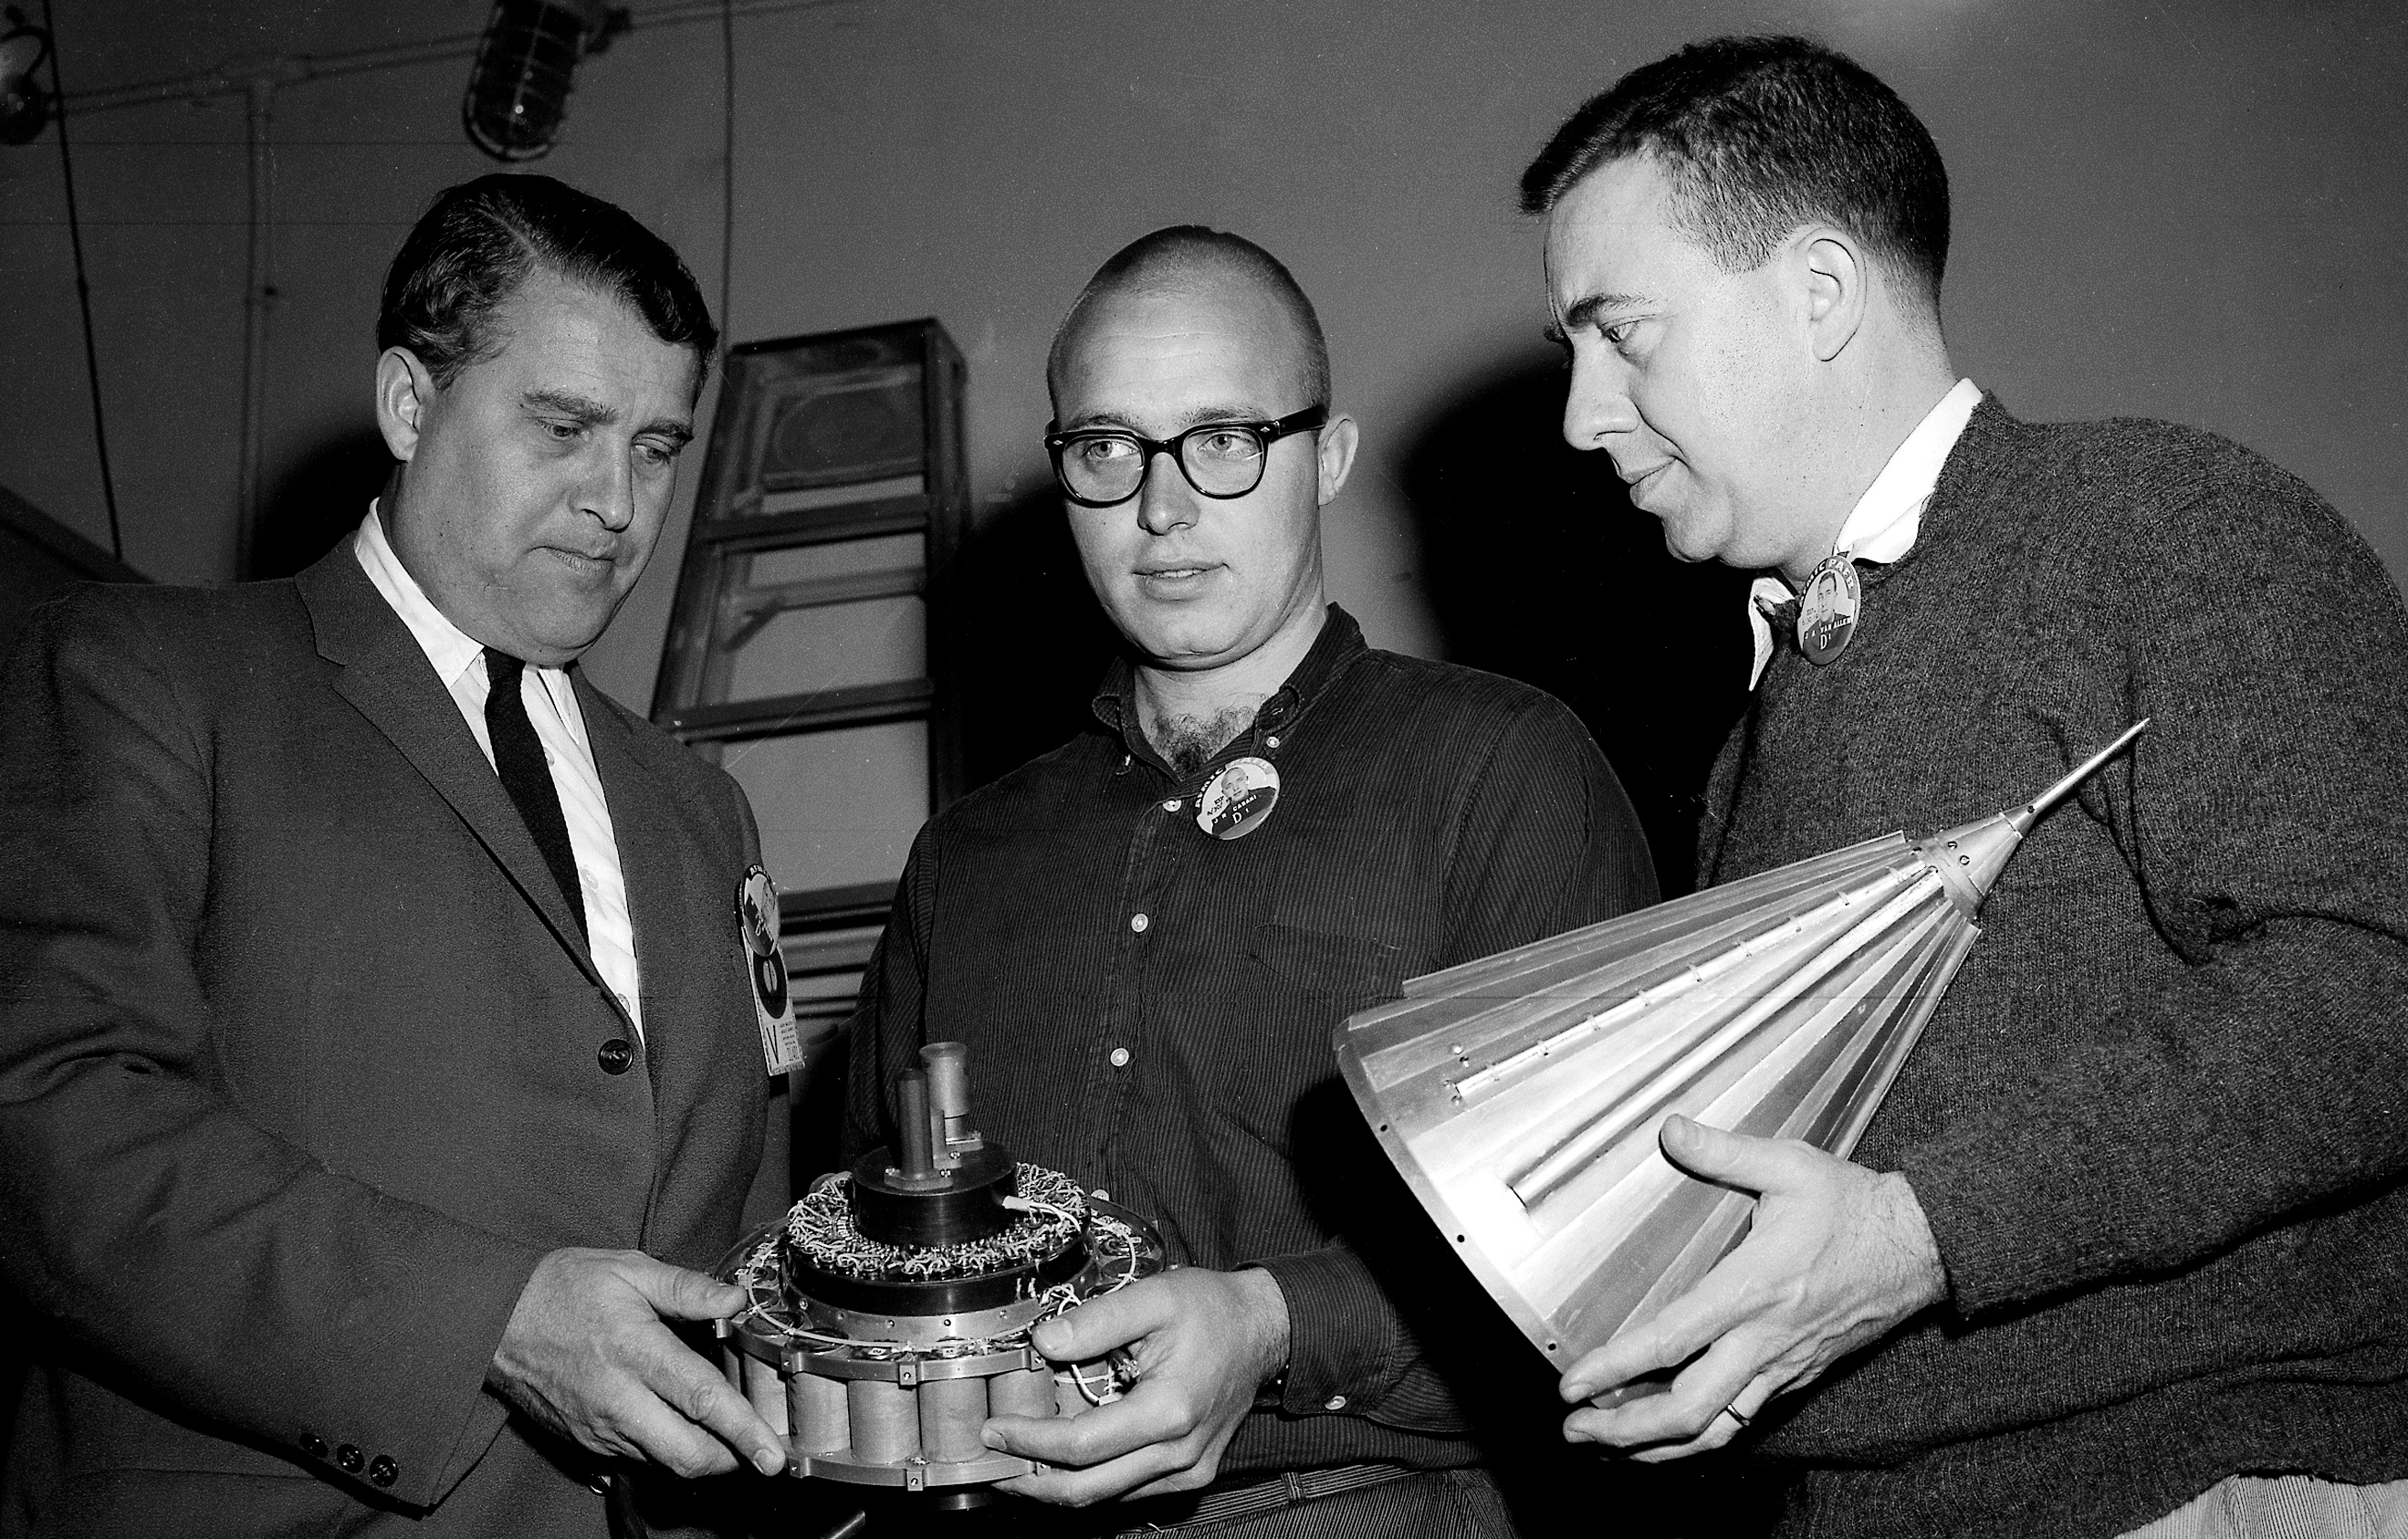 Black and white image of three men holding a small, conical spacecraft.